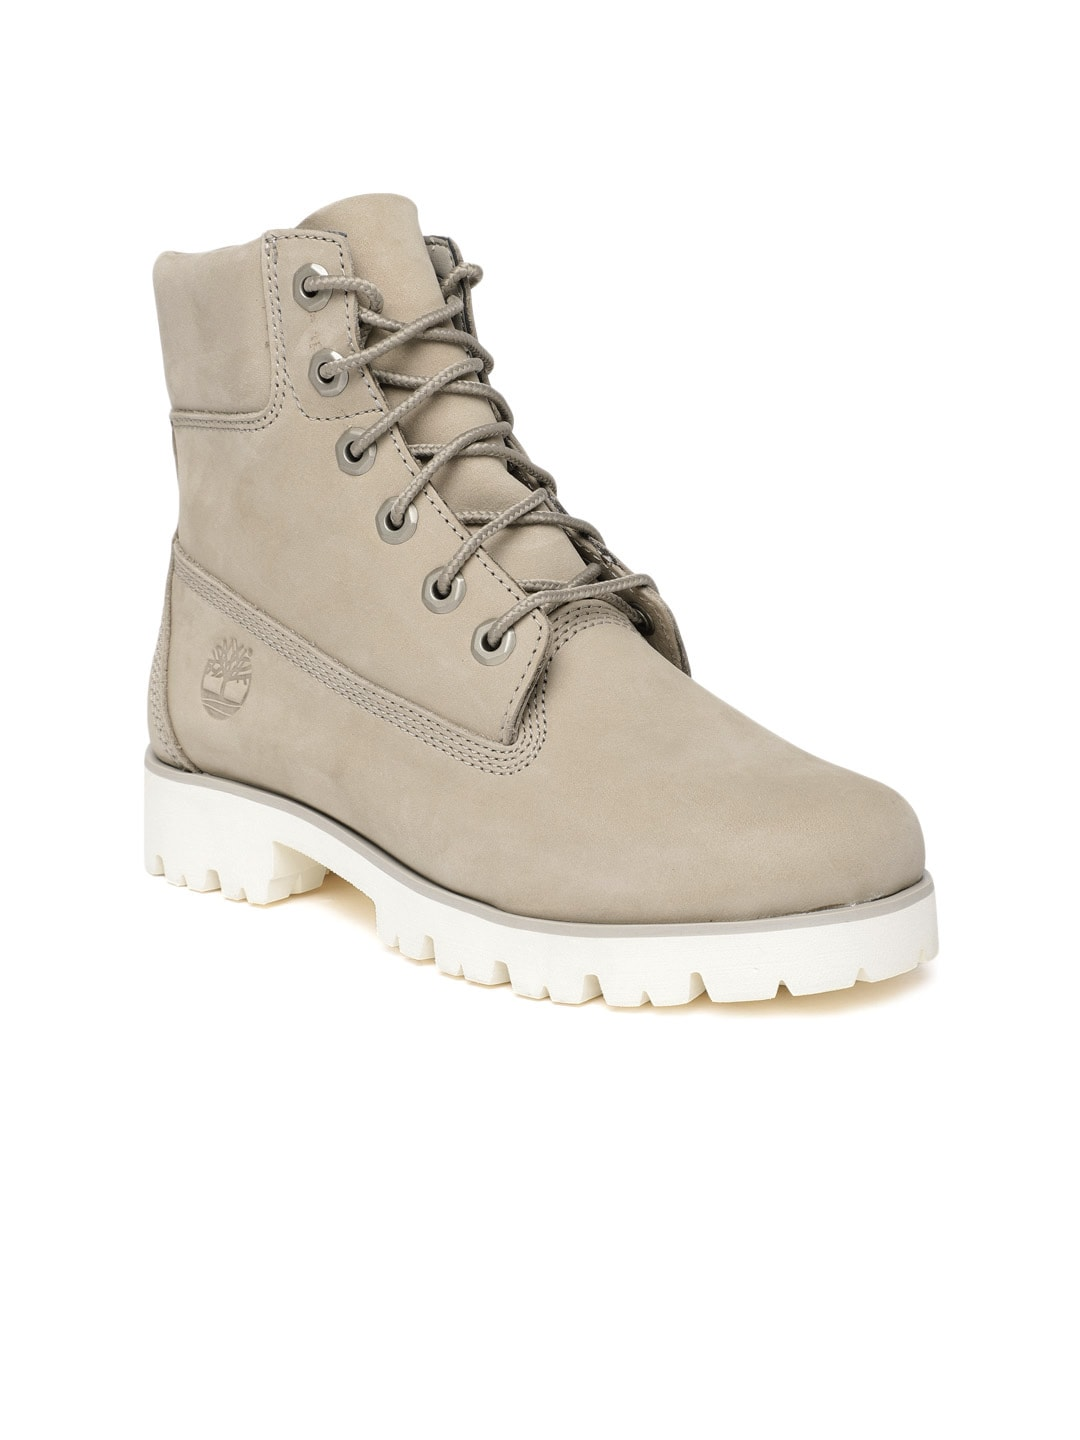 Timberland Shoes - Buy Timberland Shoes Online in India fb414ffd4